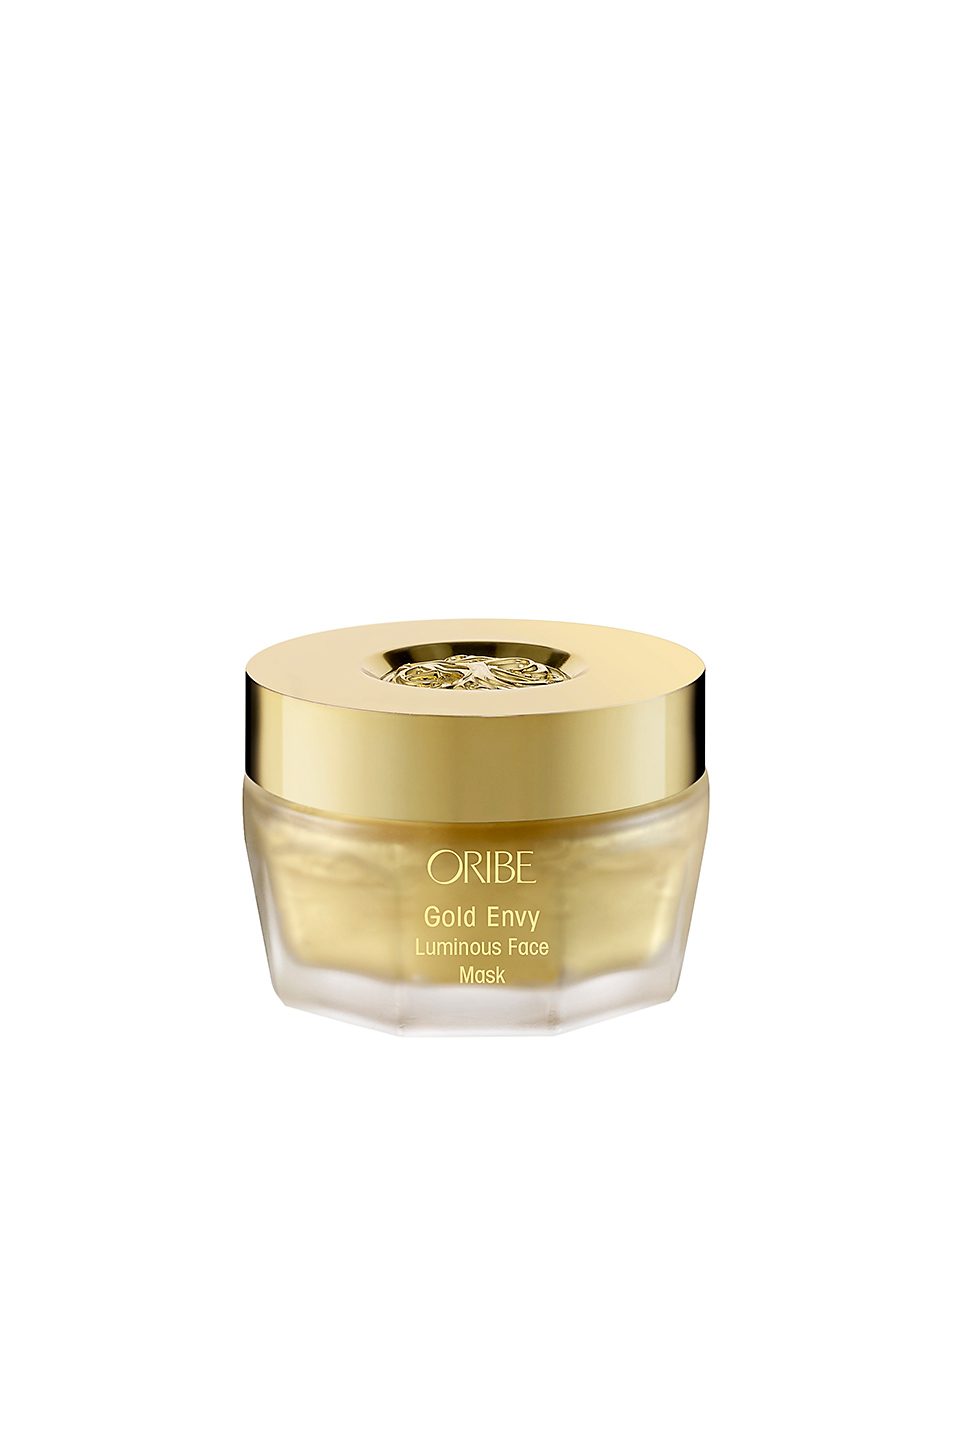 Oribe Gold Envy Luminous Face Mask in